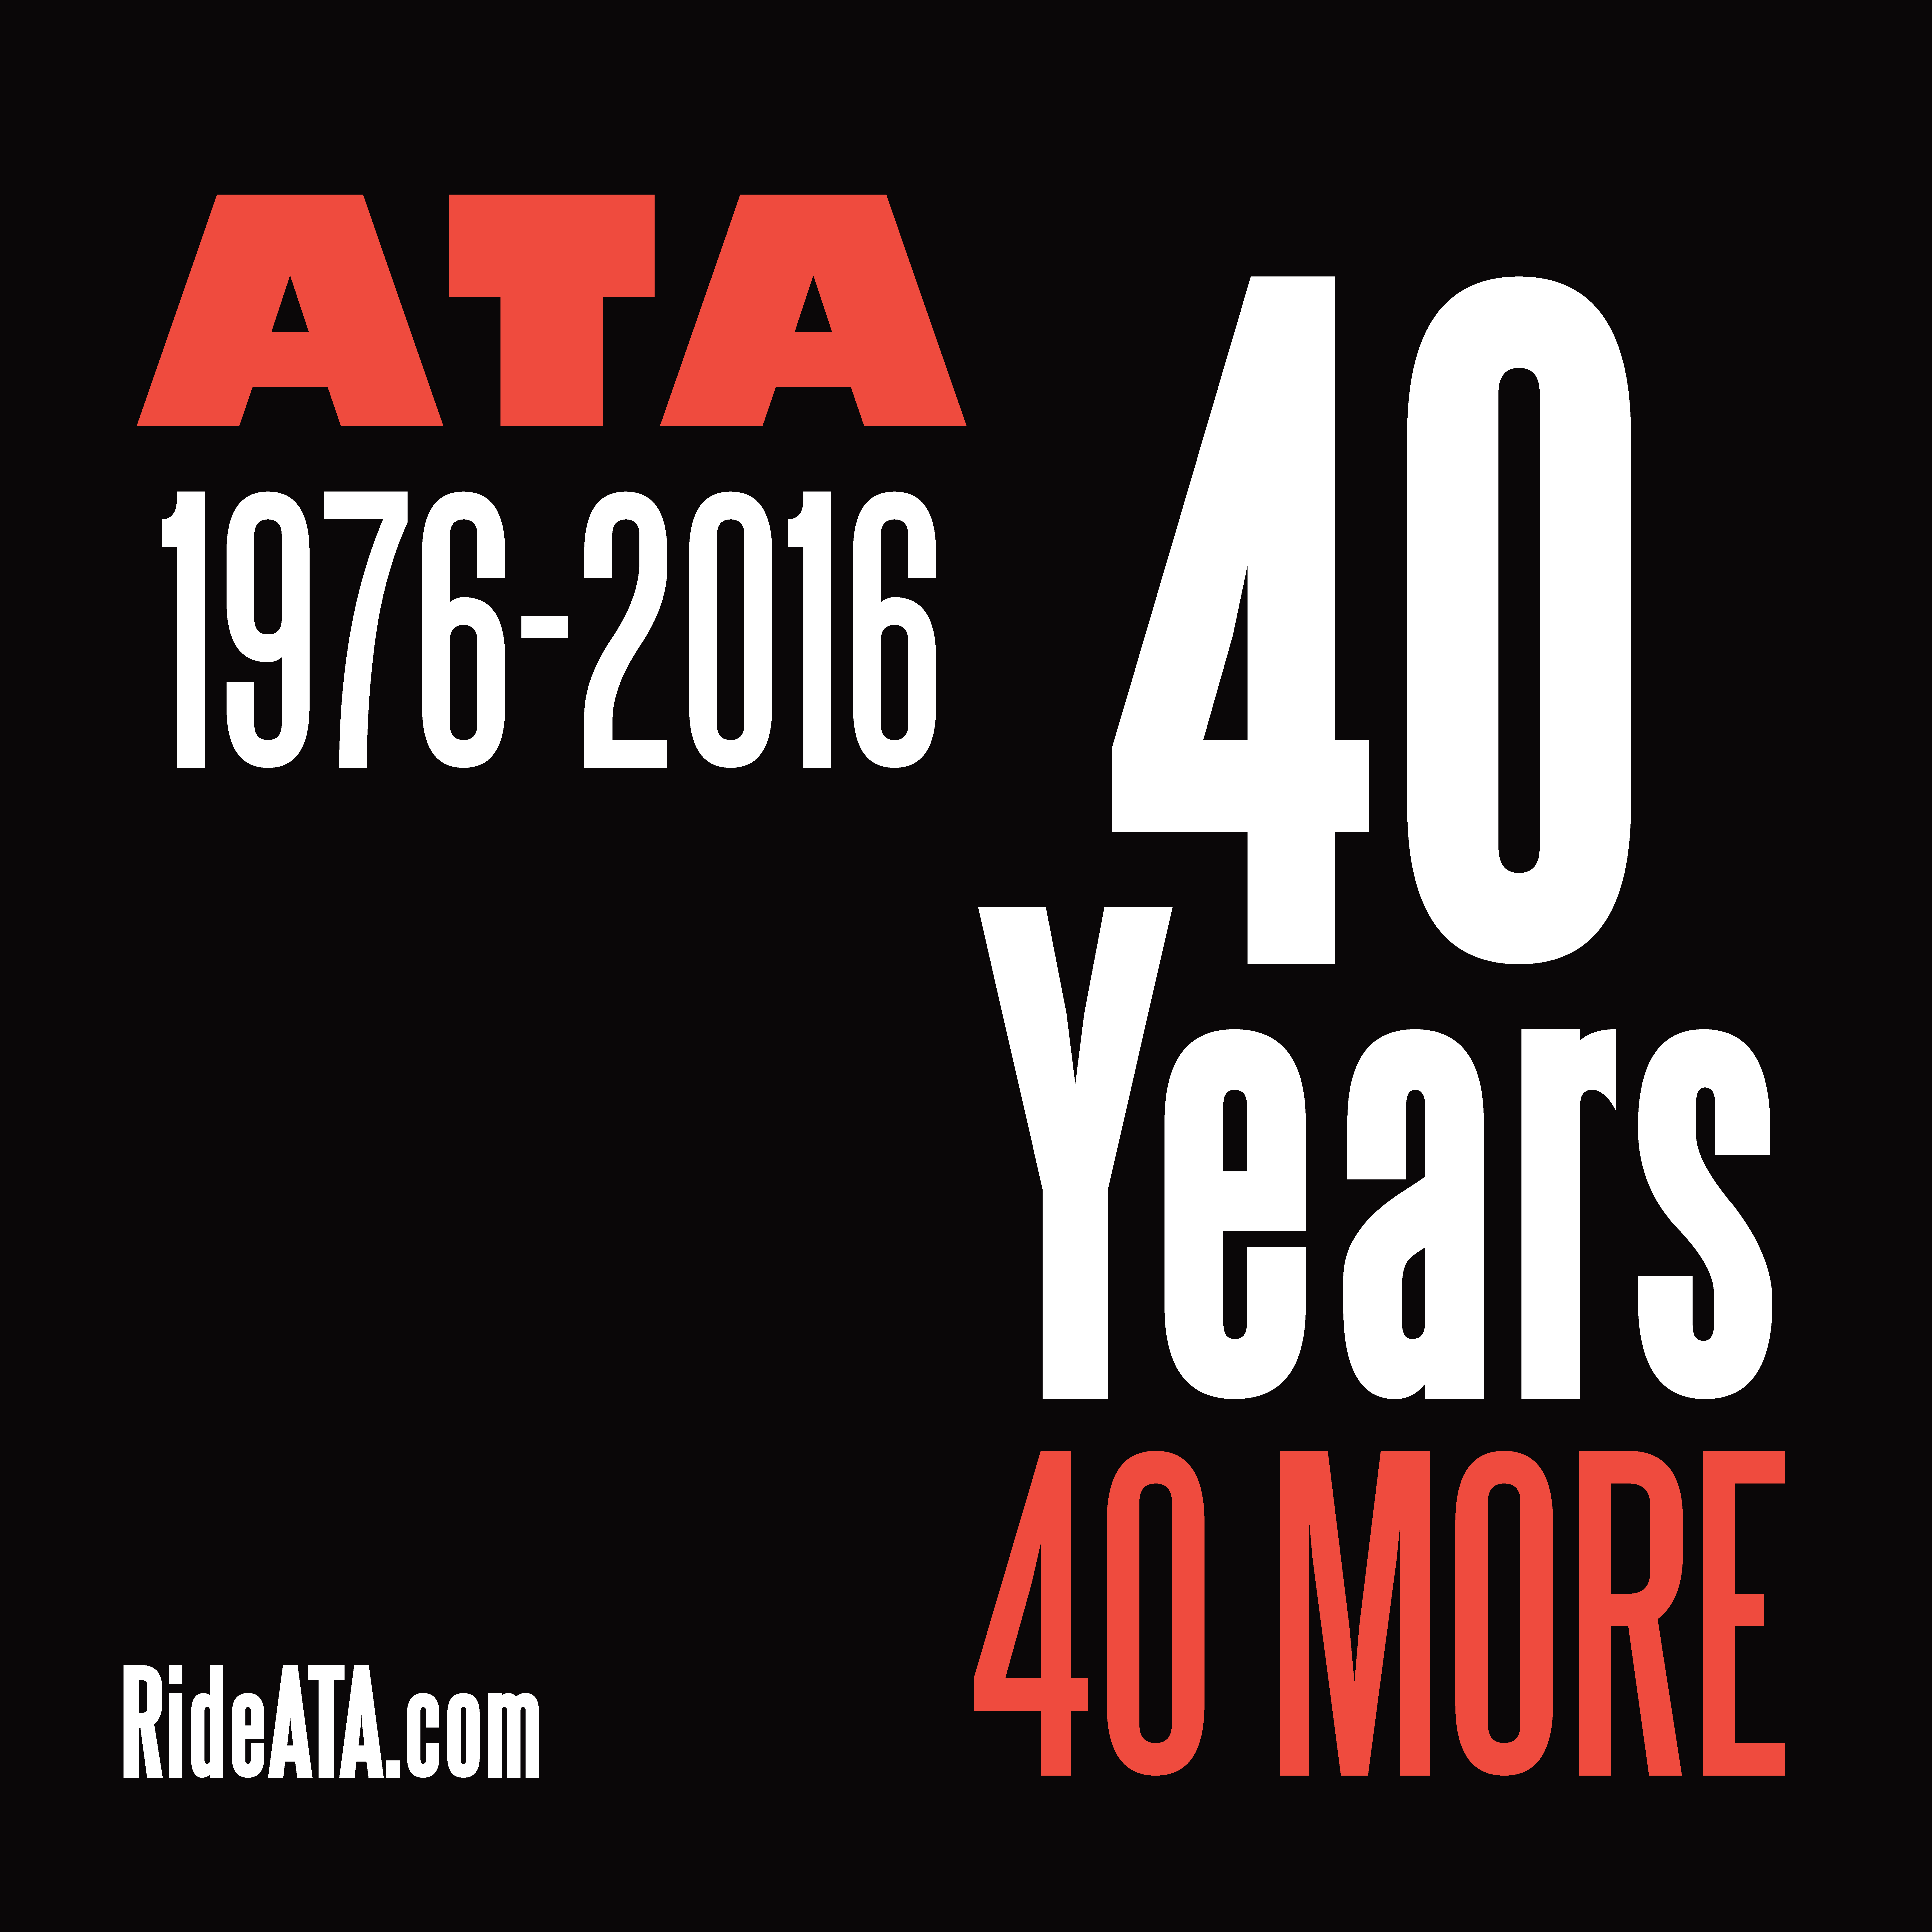 ATA Workshop 2016 40 MORE LOGO